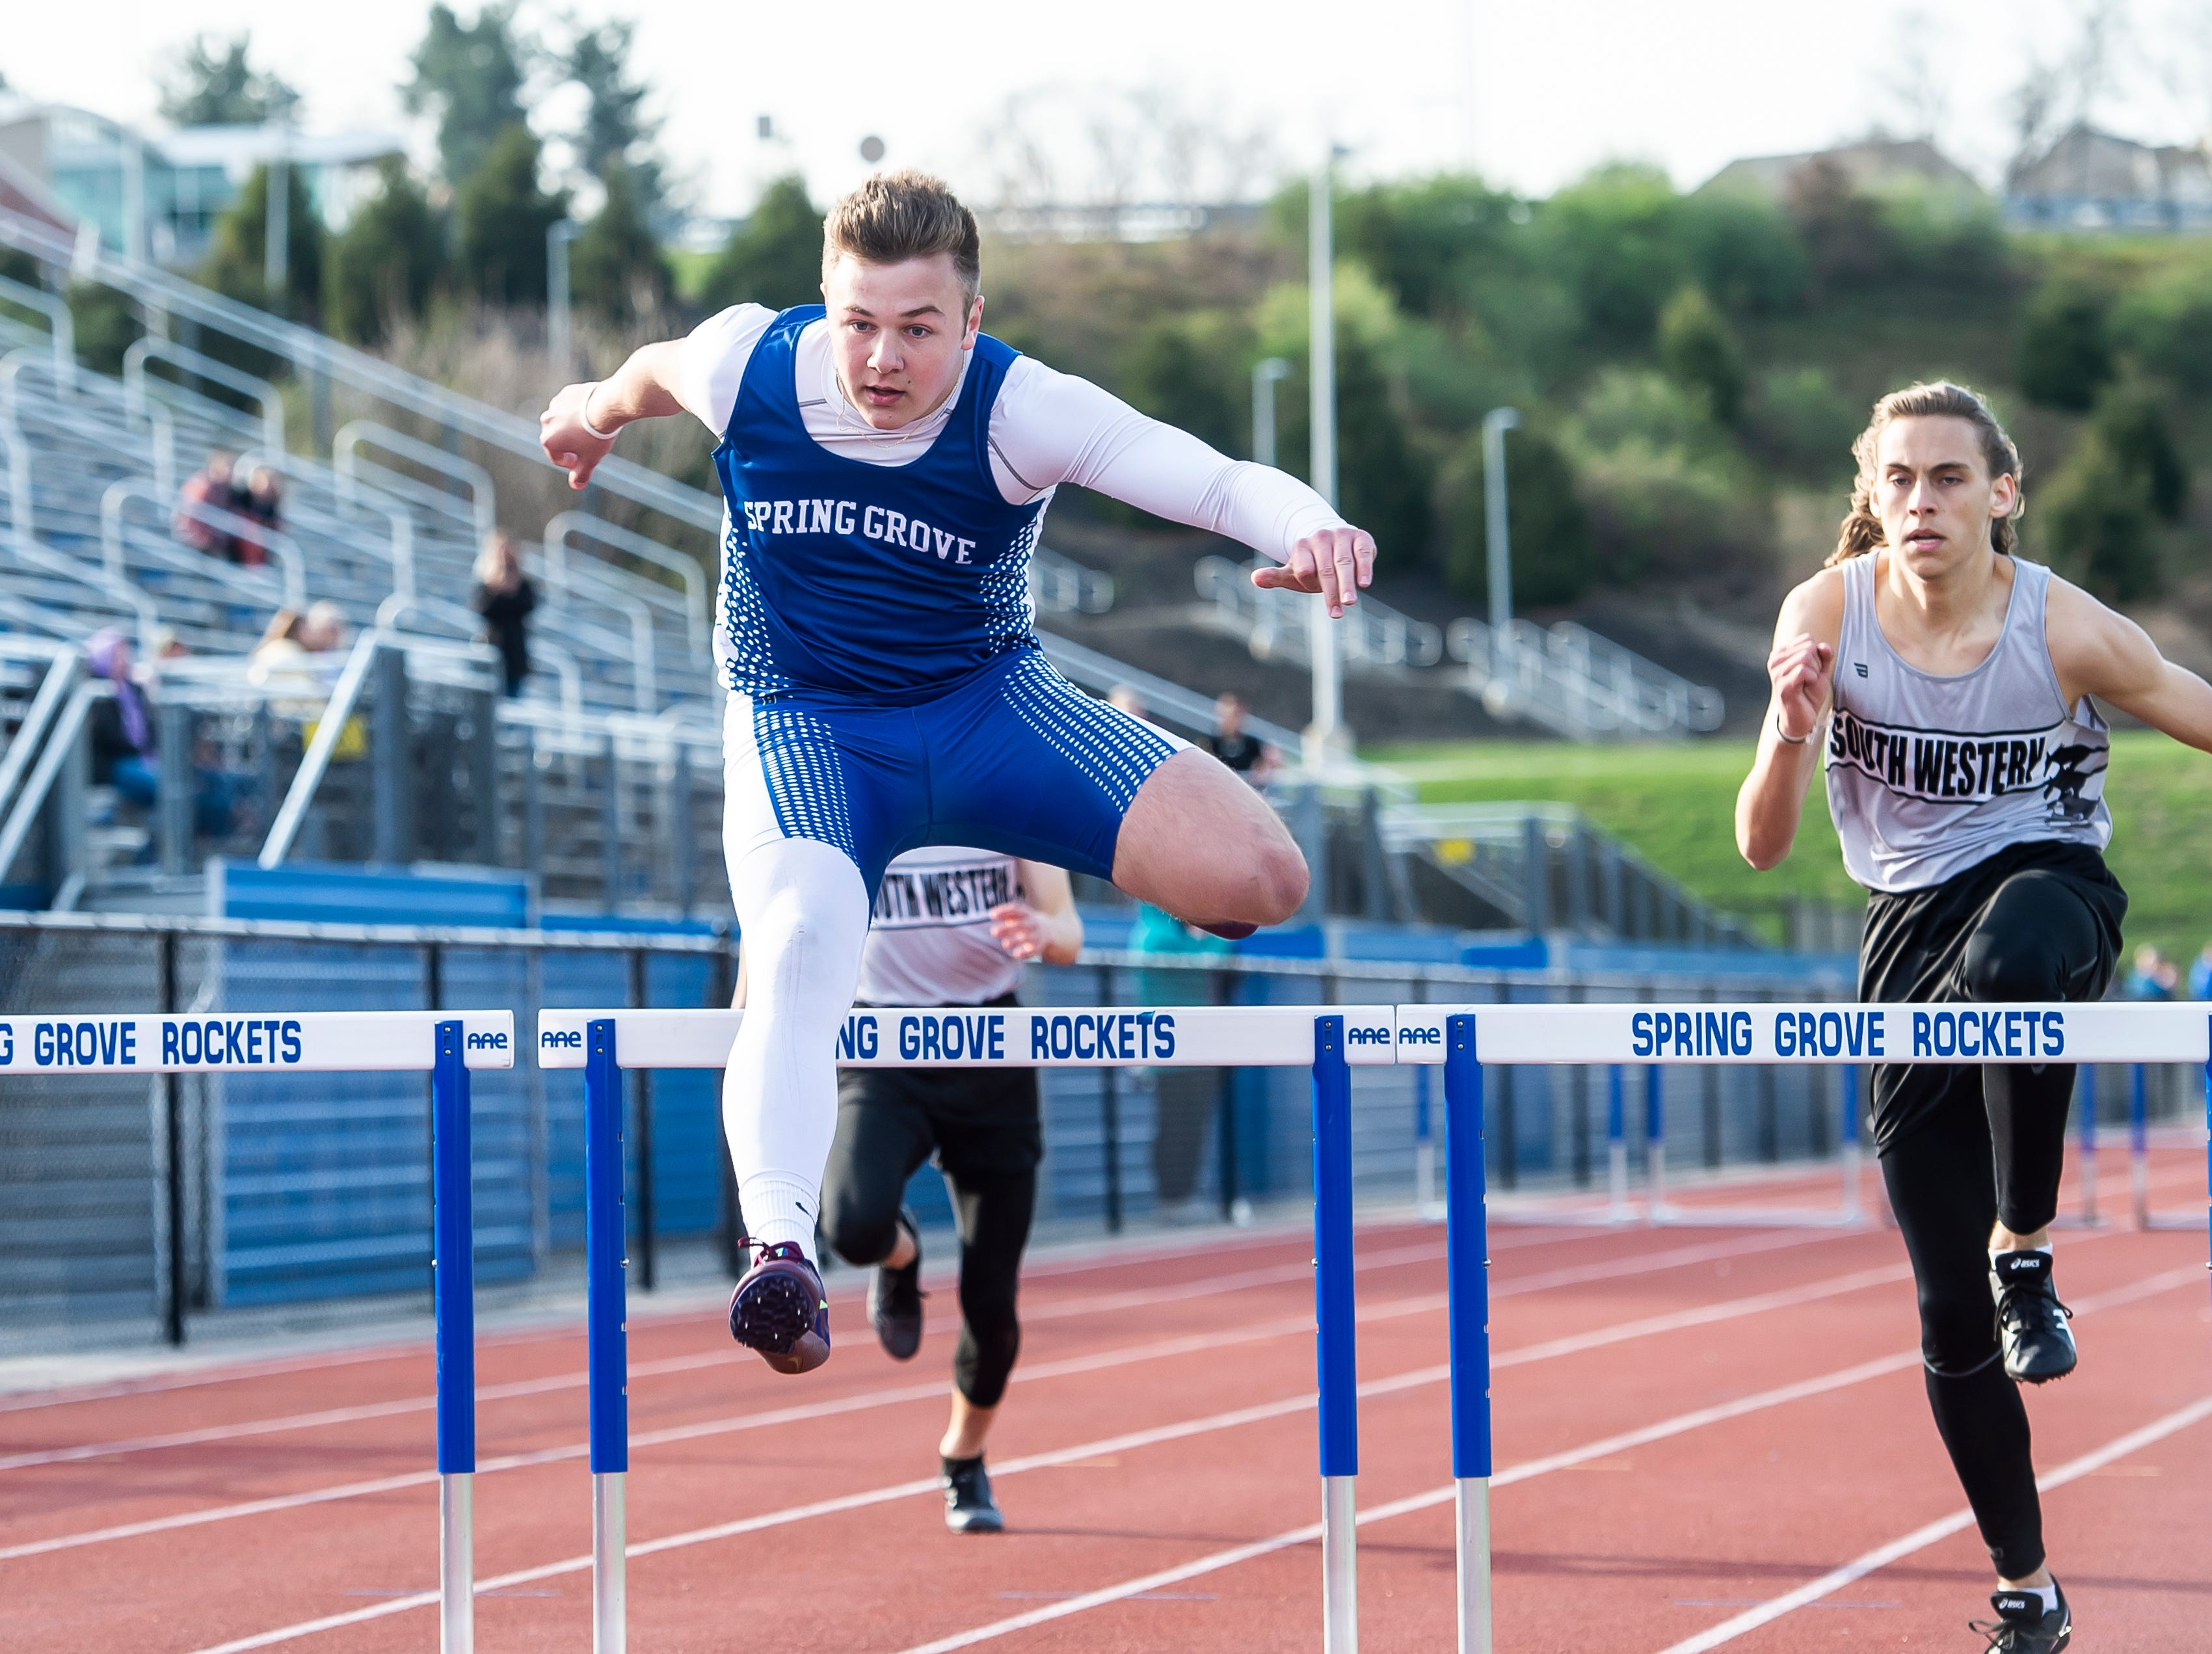 Spring Grove's Jonah Warehime leaps over the final hurdle in the 300m hurdles on his way to place first during a track and field meet against South Western on Thursday, April 11, 2019.